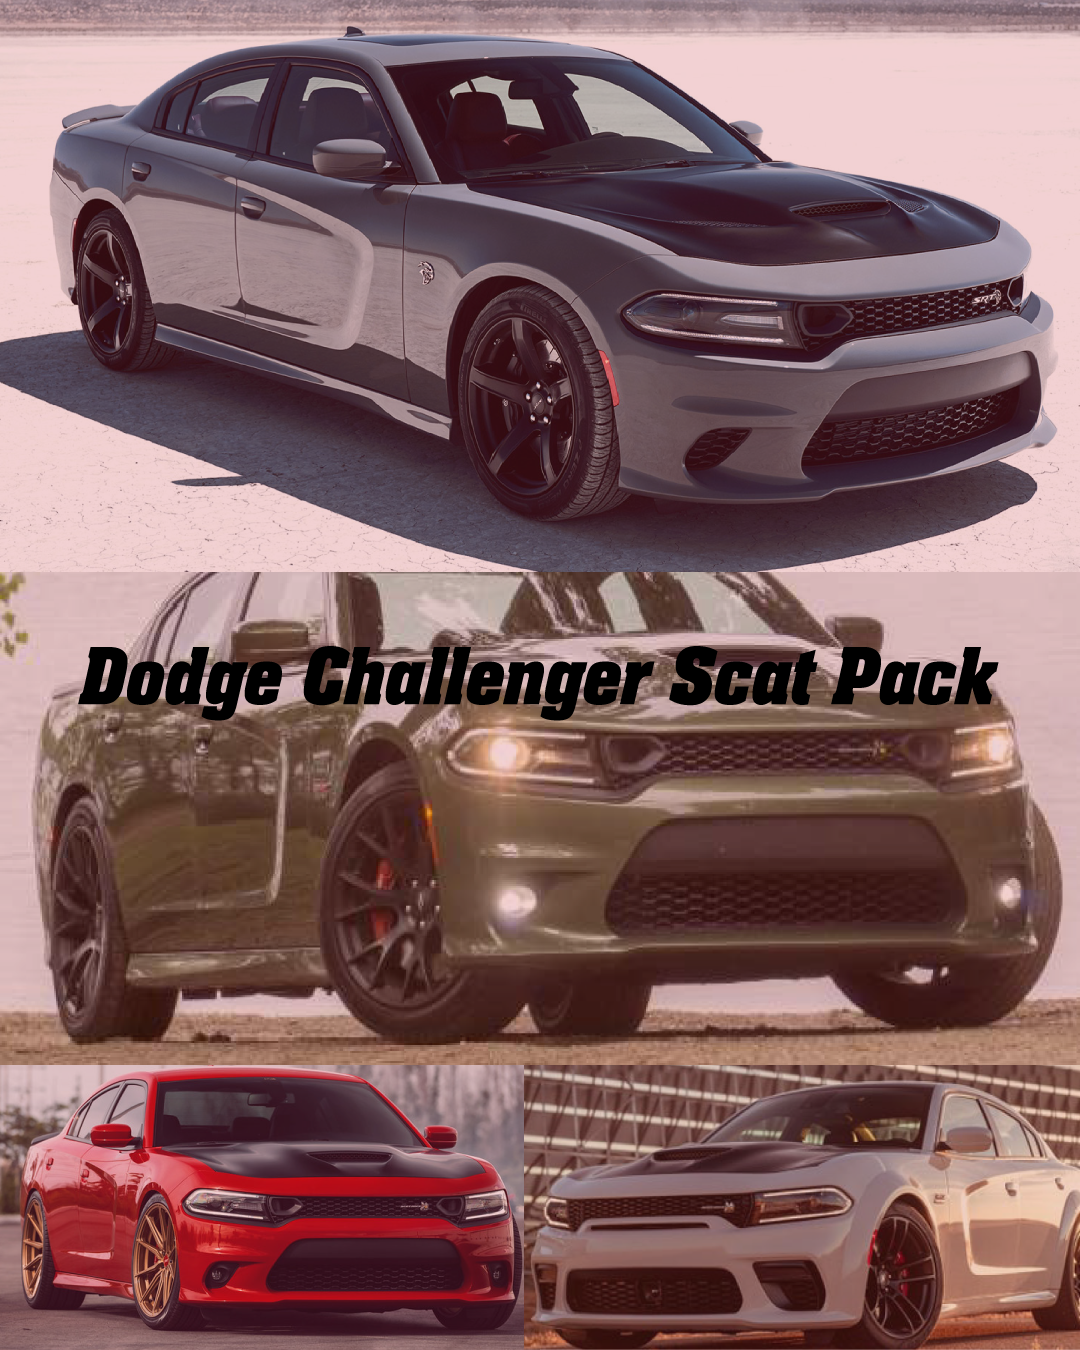 2020 Dodge Charger Scat Pack Overview Of Features Specs Price In 2020 Dodge Challenger Scat Pack Scat Pack Dodge Charger